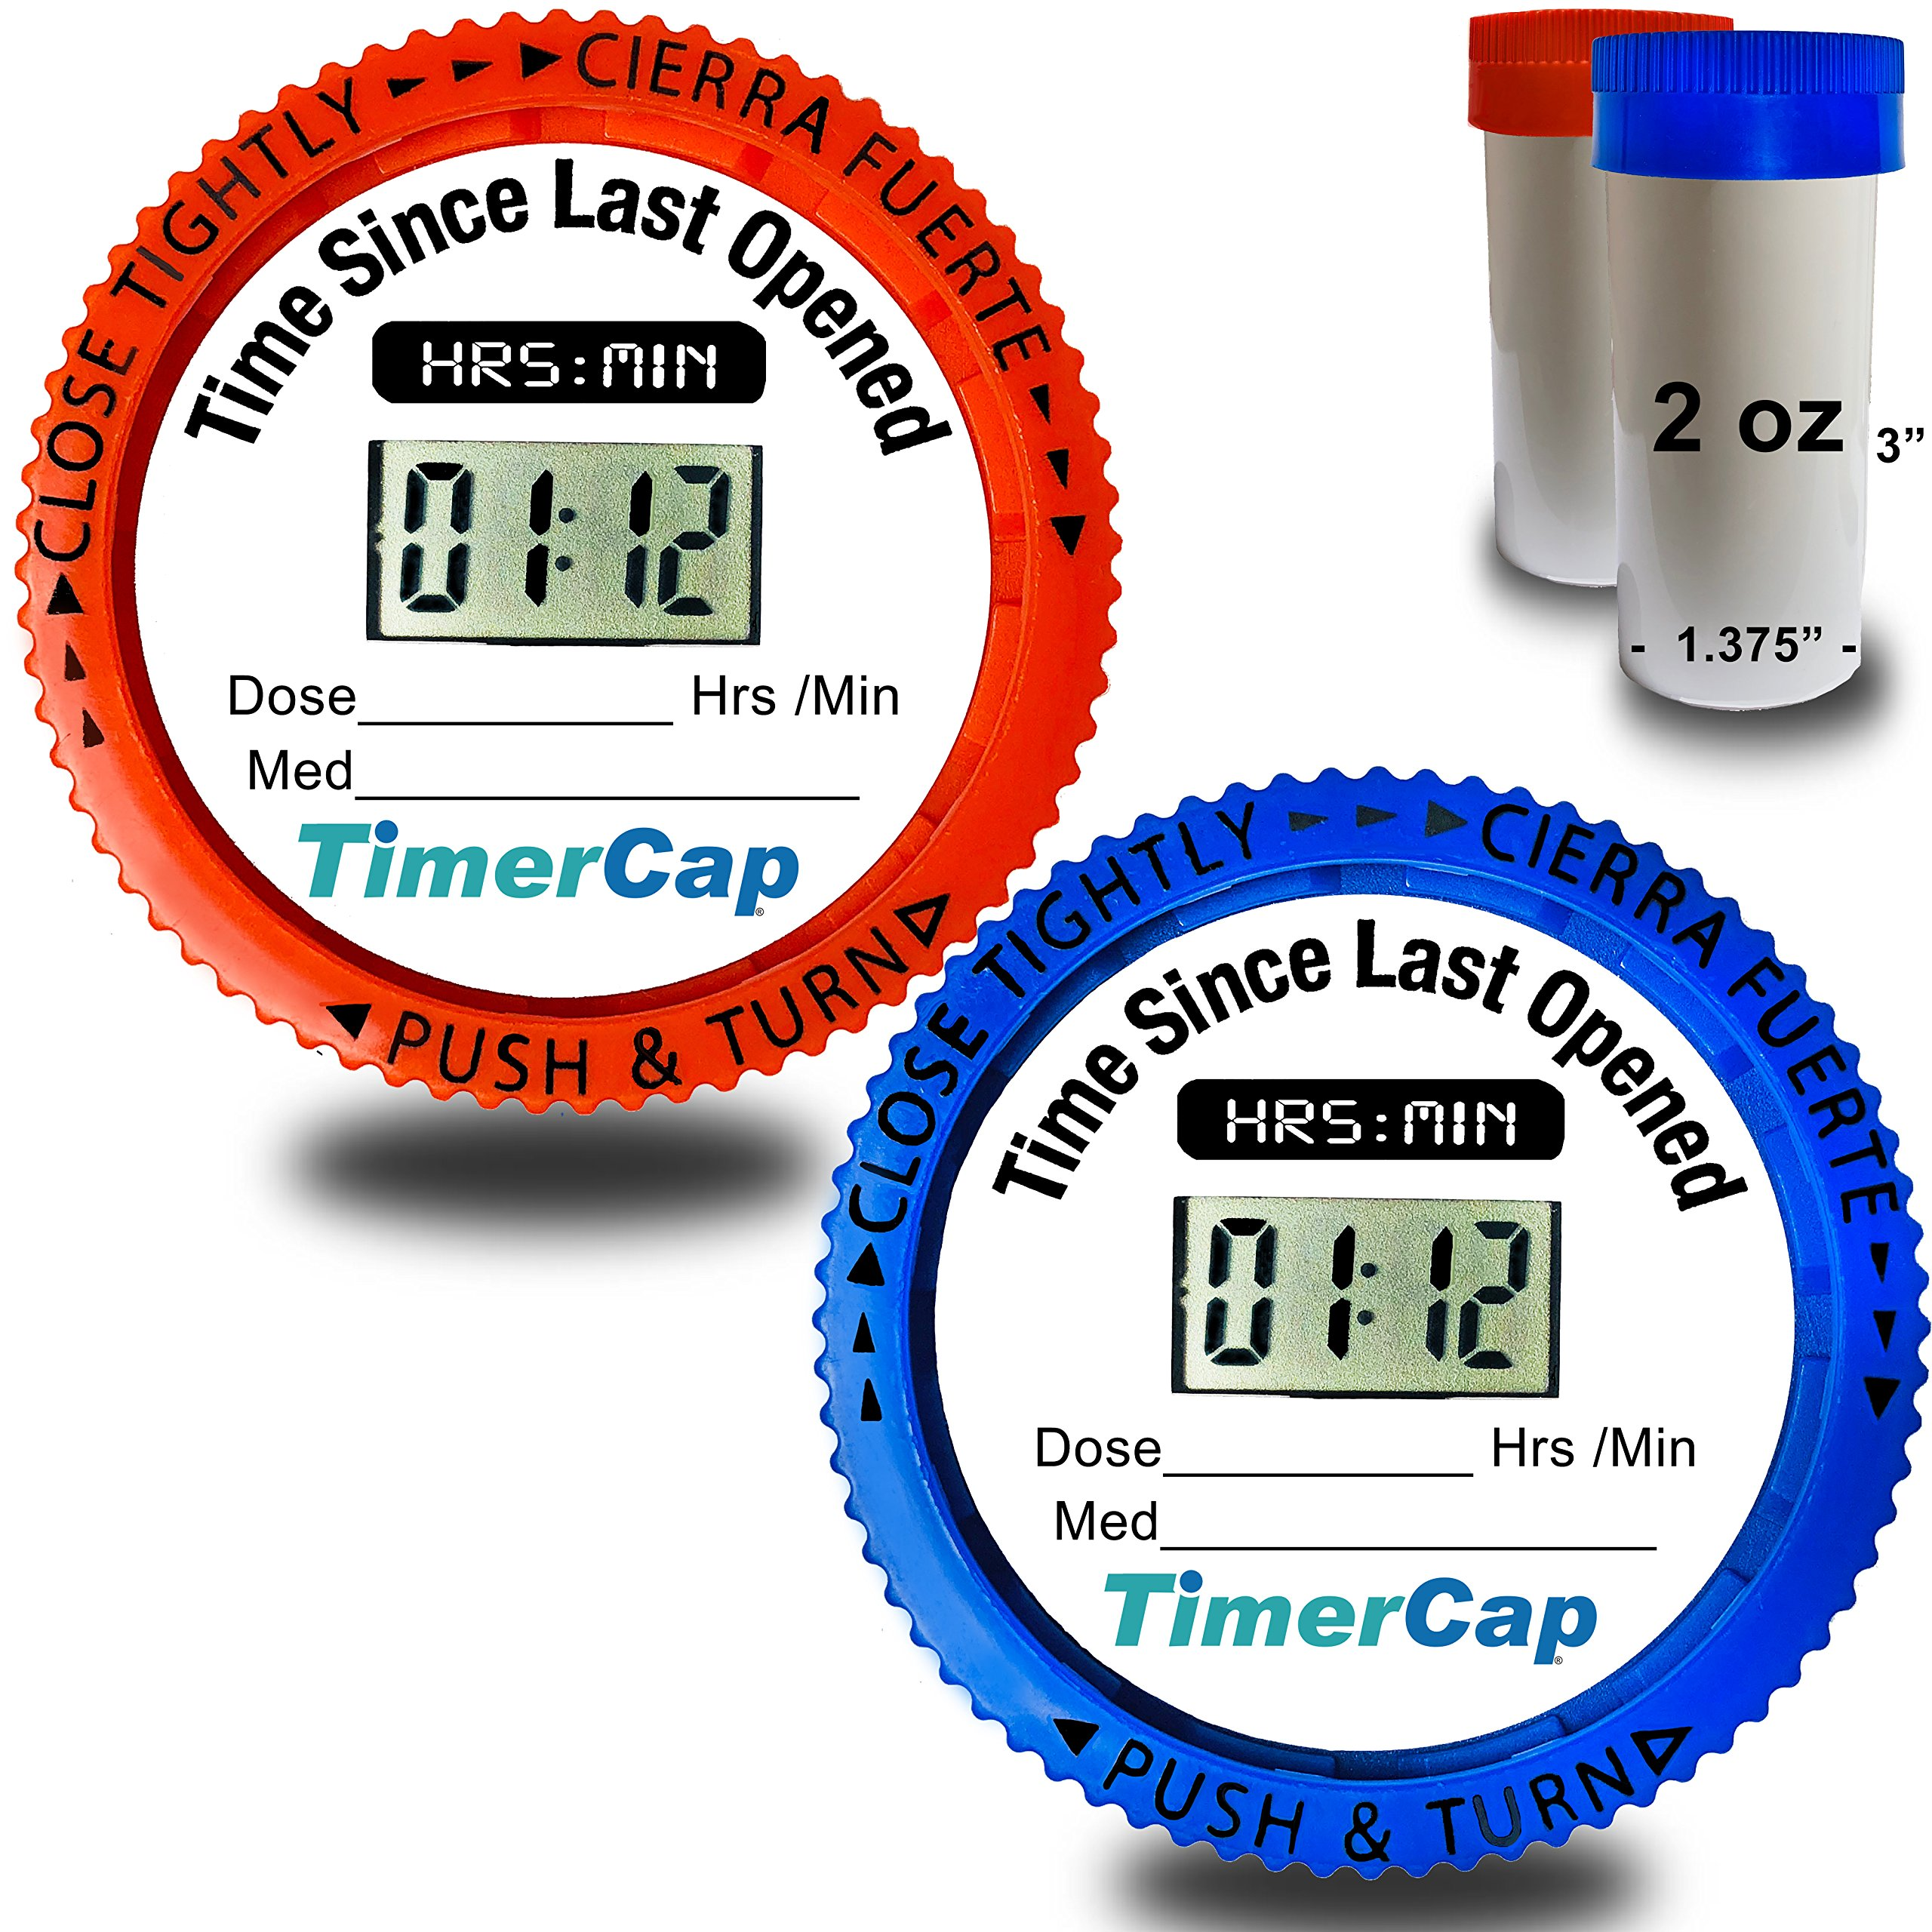 Timer Caps with Std. 2 oz. Vials (Qty 2) - Pill Organizer & Reminder for Medications